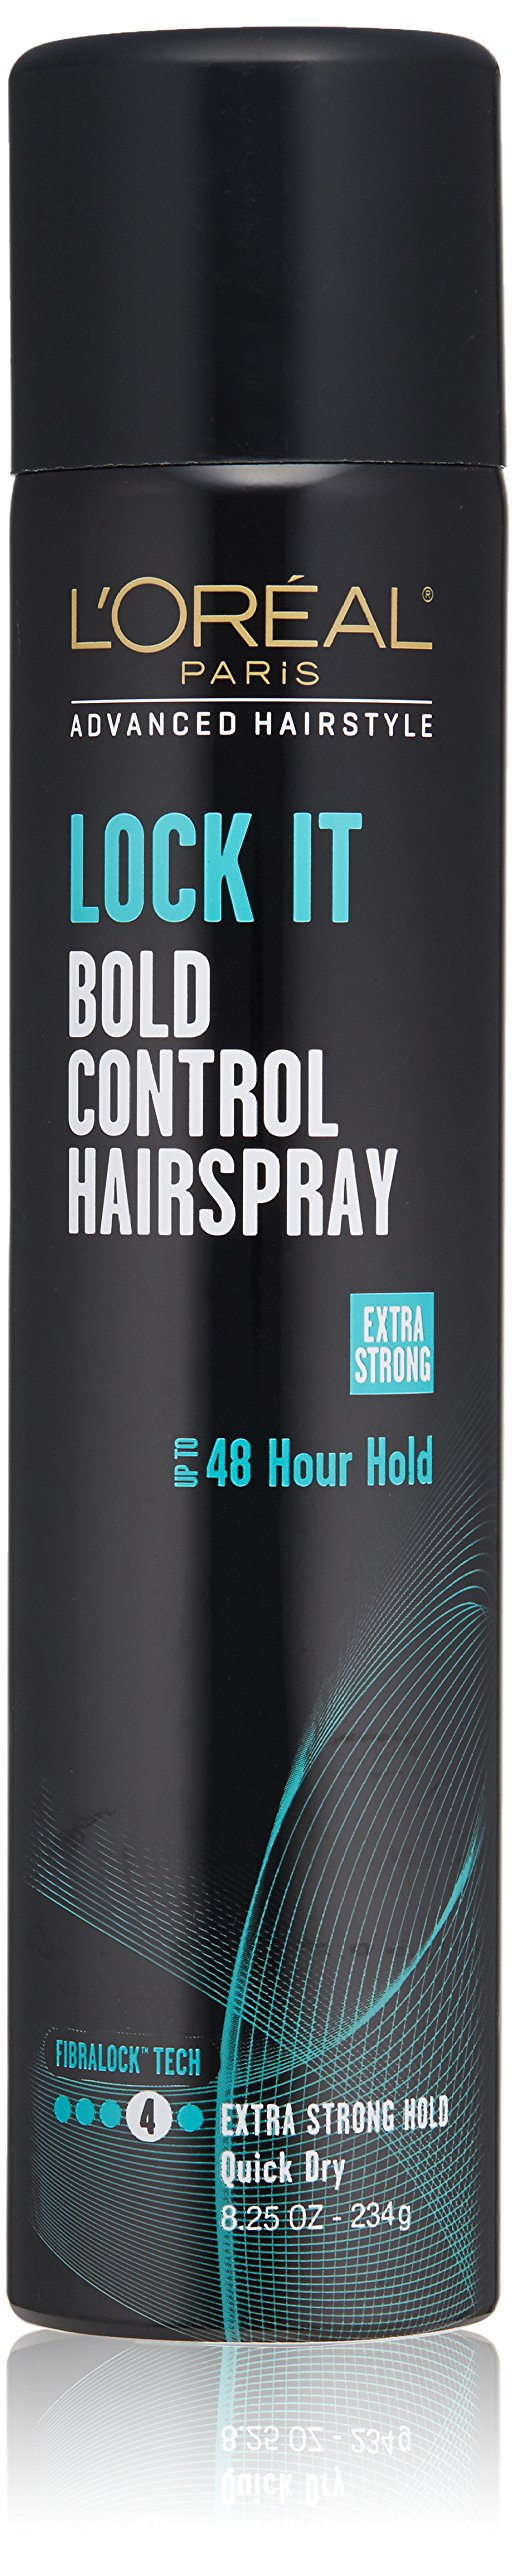 L'Oréal Paris Advanced Hairstyle LOCK IT Bold Control Hairspray, 8.25 oz. (Packaging May Vary)